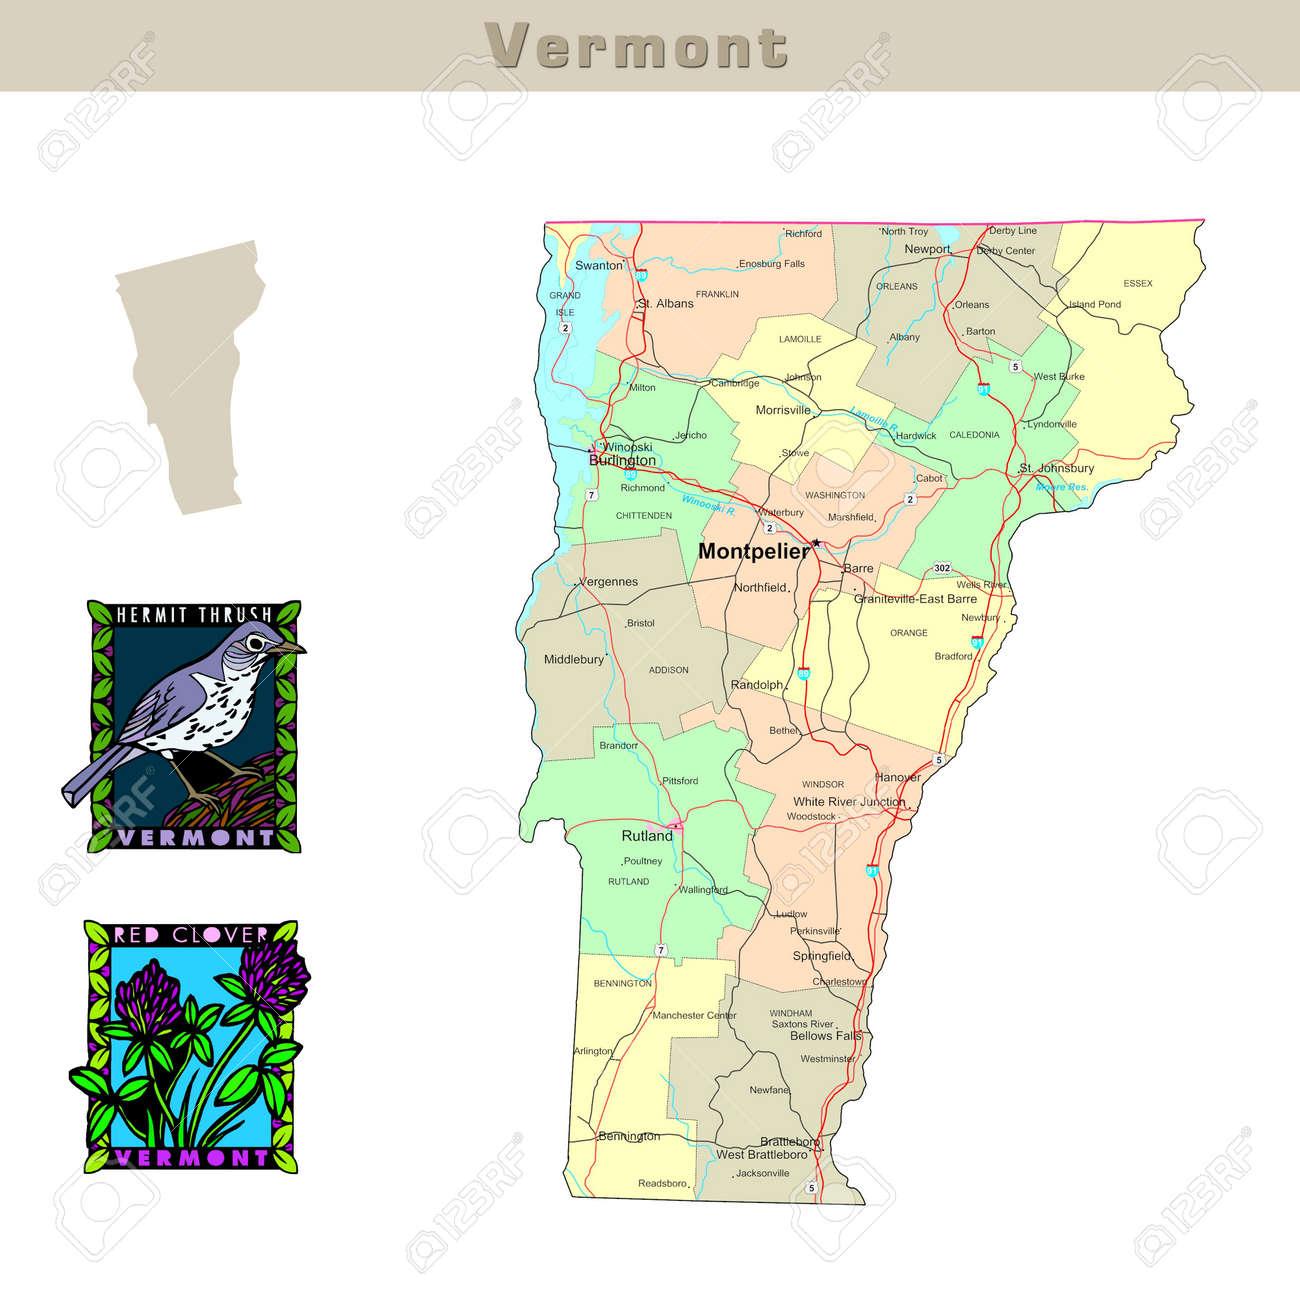 USA States Series Vermont Political Map With Counties Roads - Vermont in usa map